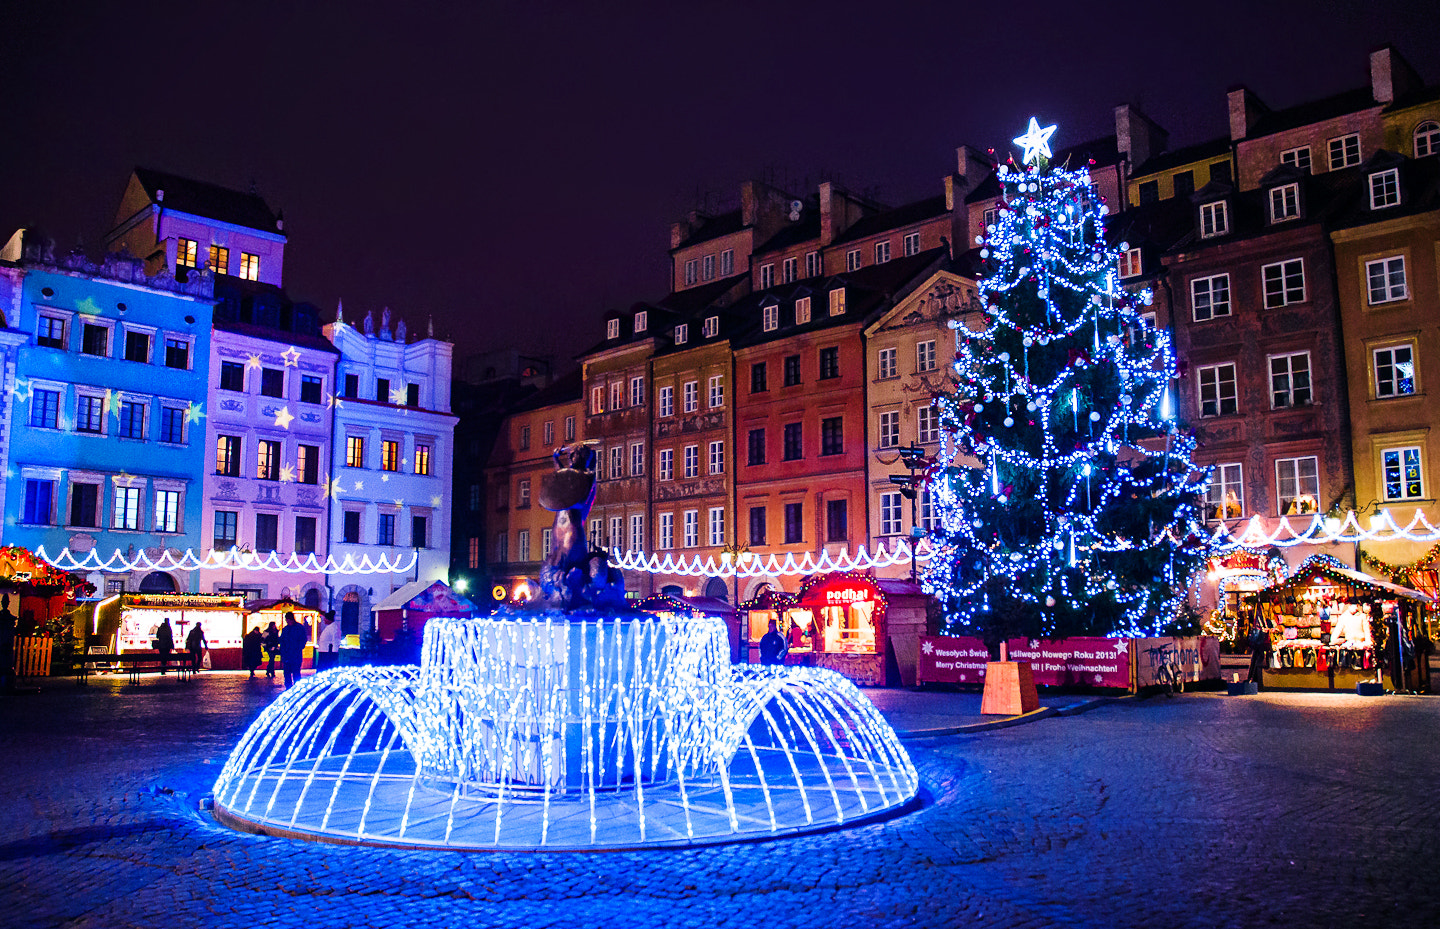 Photograph Warsaw Old Town Christmas Market by Mike Lesaski on 500px